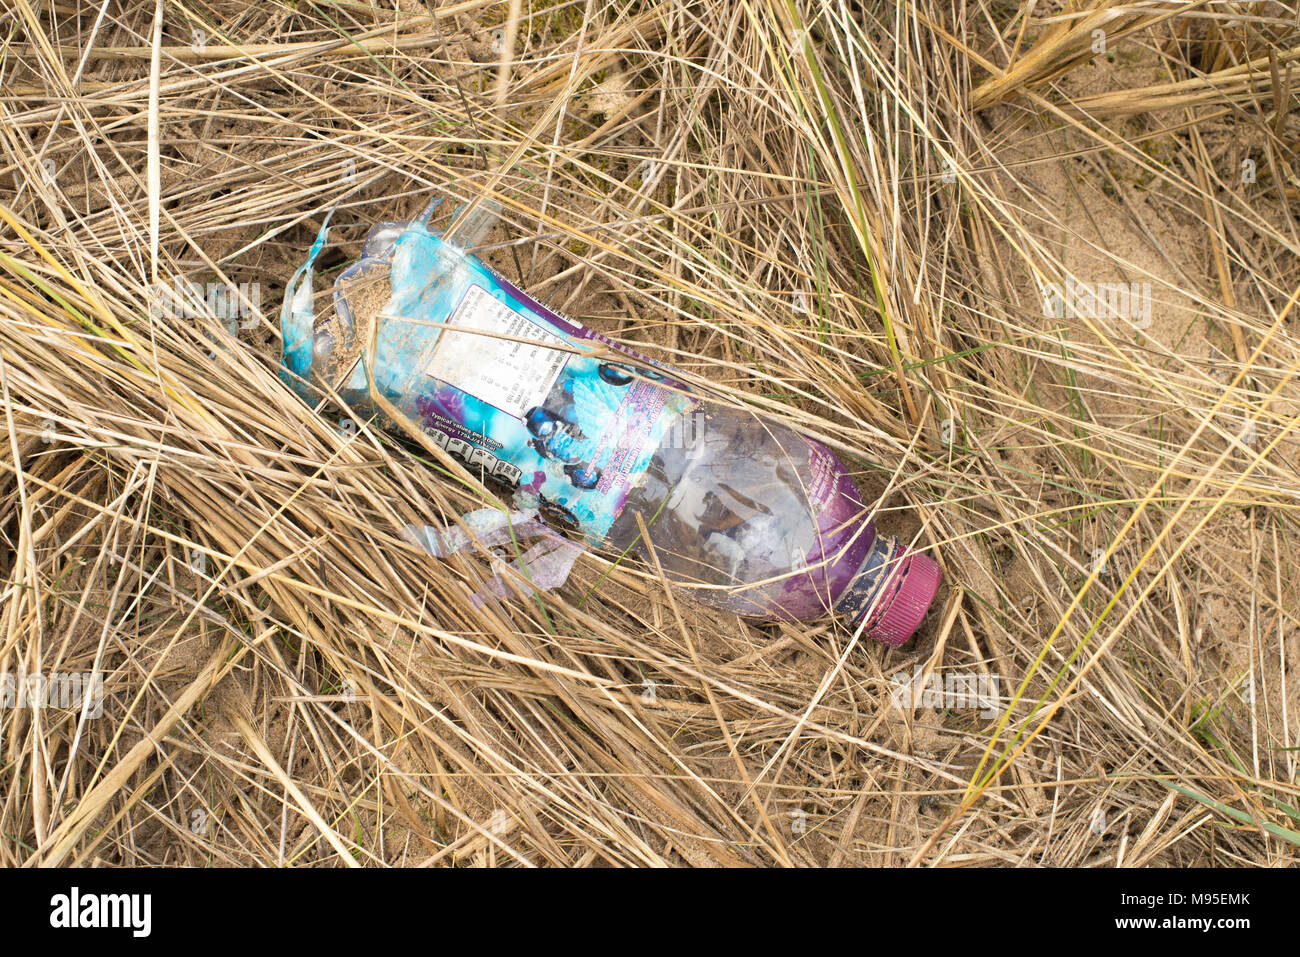 A plastic bottle discarded or thrown away - Stock Image